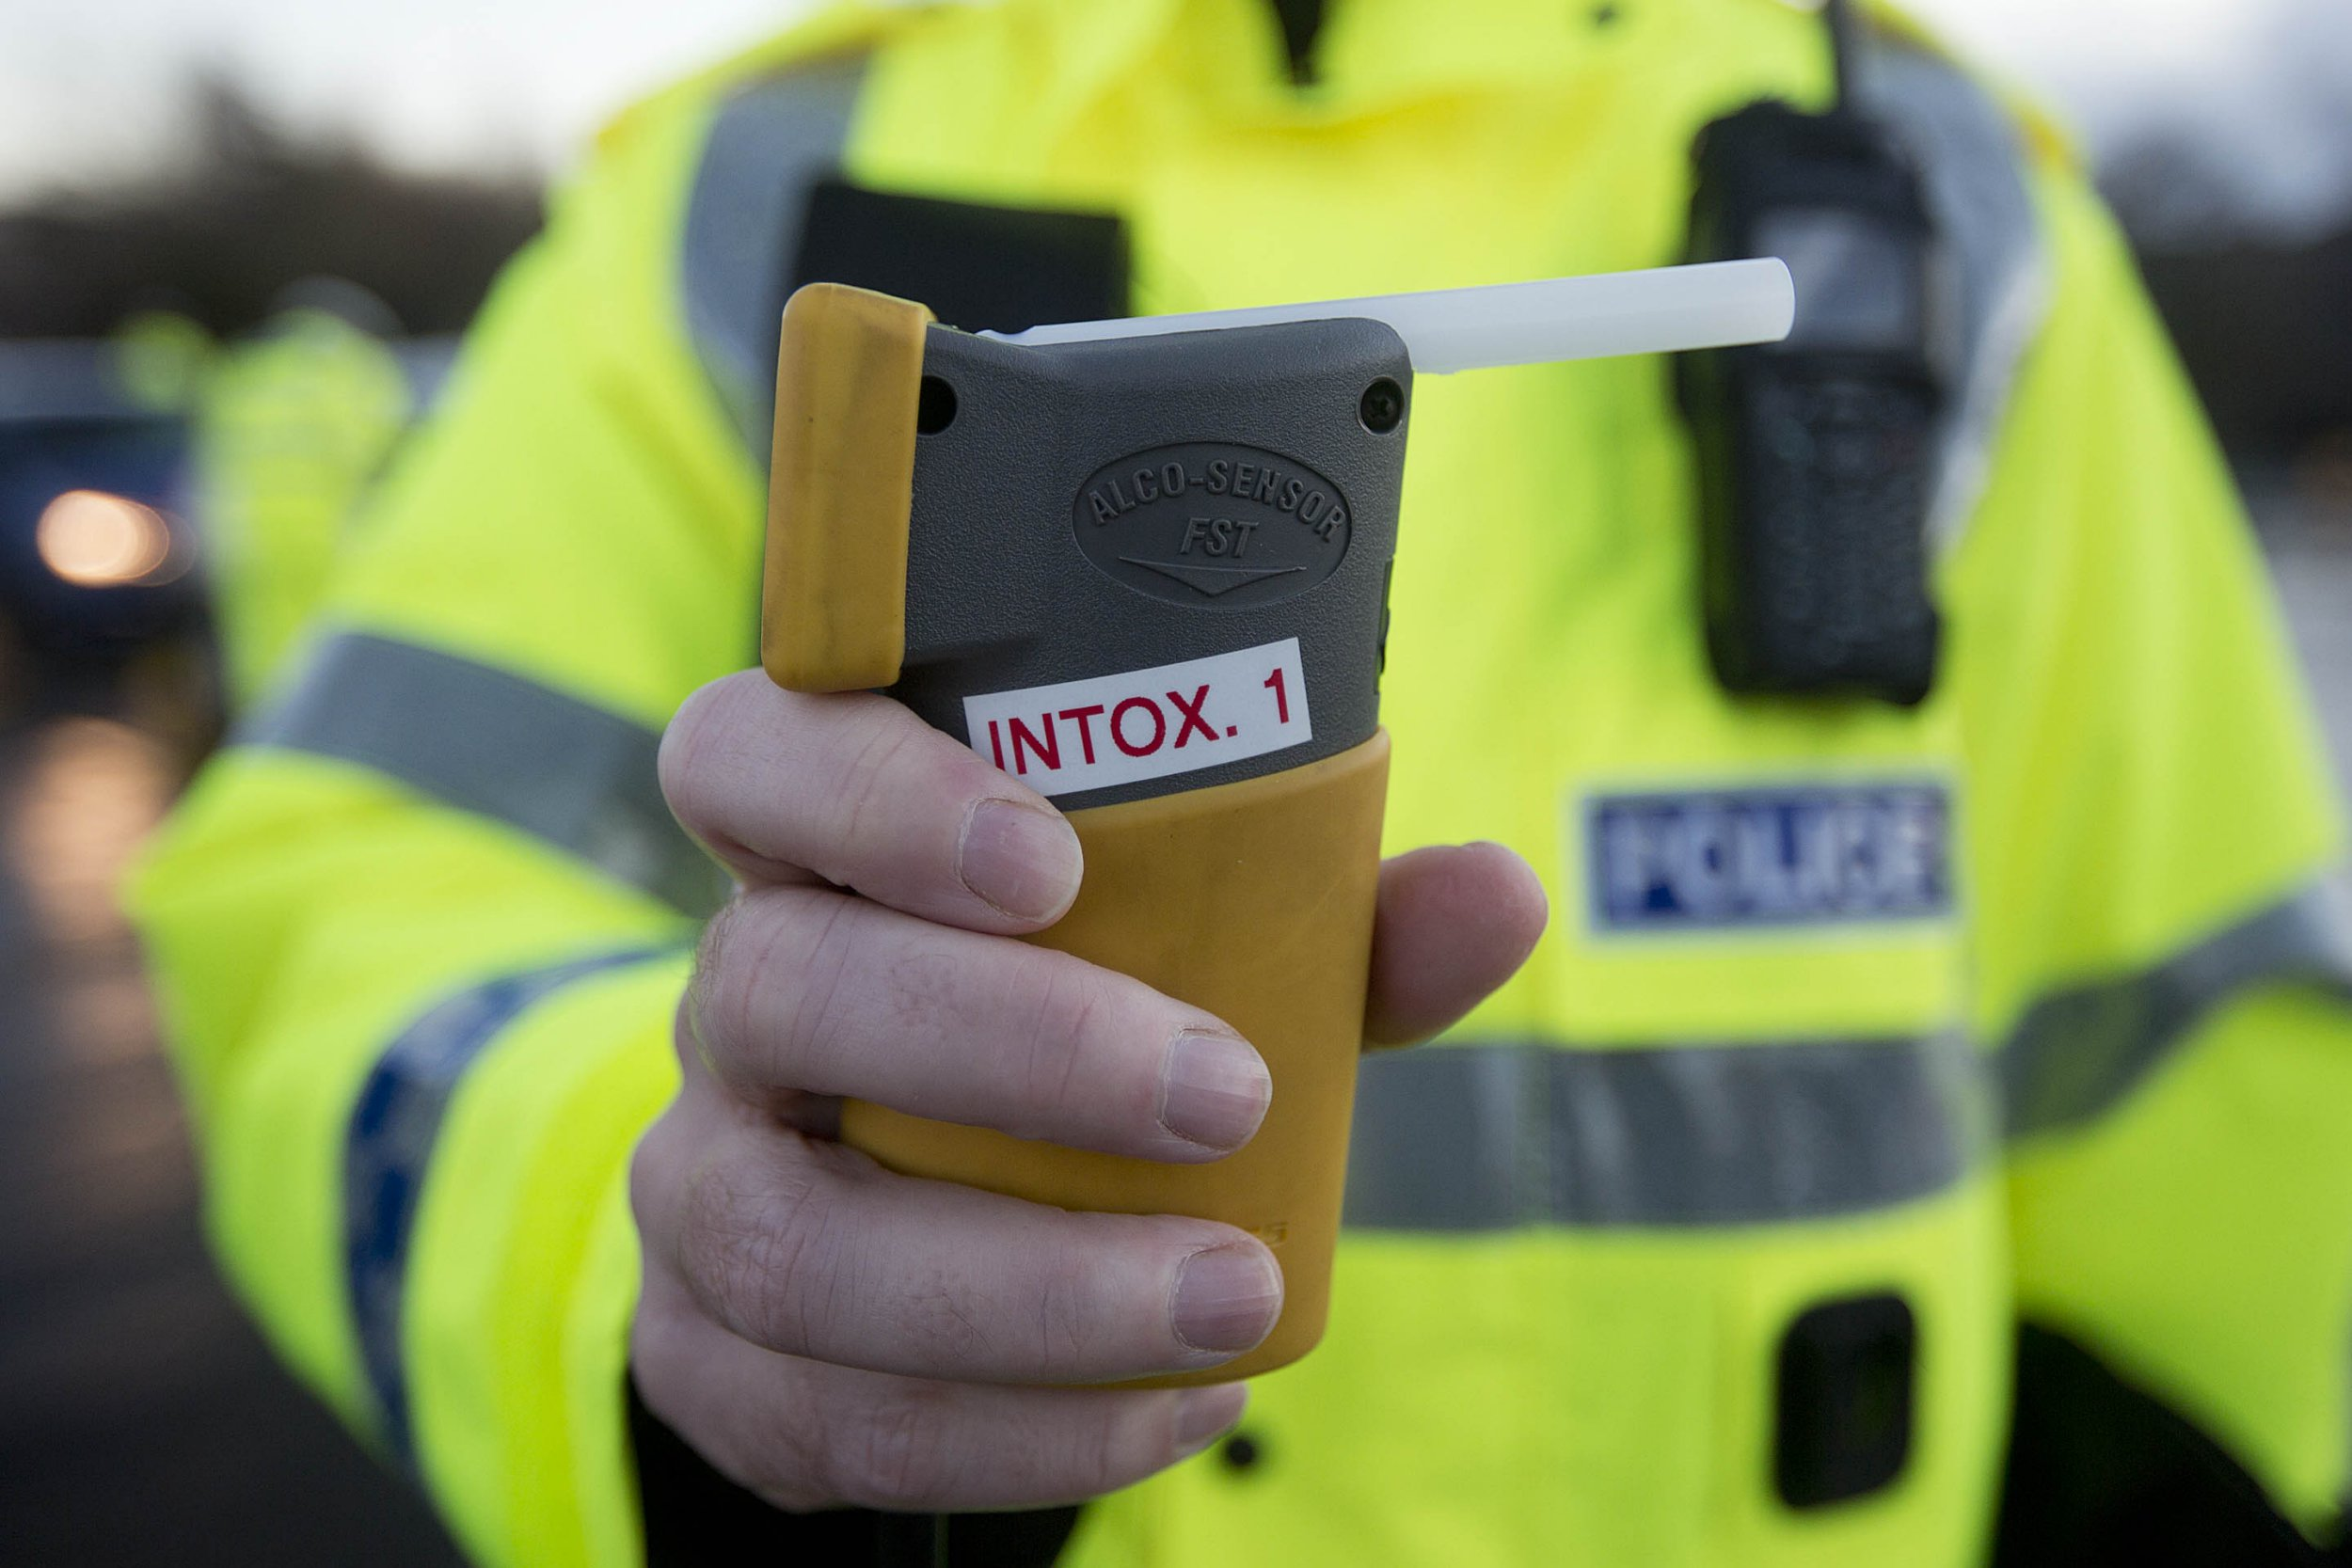 Mandatory Credit: Photo by Michael Mcgurk/REX/Shutterstock (4277937c) Local traffic police stopped drivers at Crown Street in Glasgow as part of the annual festive drink drive campaign Drink-drive limit cut in Scotland, Britain - 05 Dec 2014 The drink drive limit in Scotland has changed. A new law has come into force which makes the legal drink-drive limit in Scotland lower than elsewhere in the UK. The change reduces the legal alcohol limit from 80mg to 50mg in every 100ml of blood.